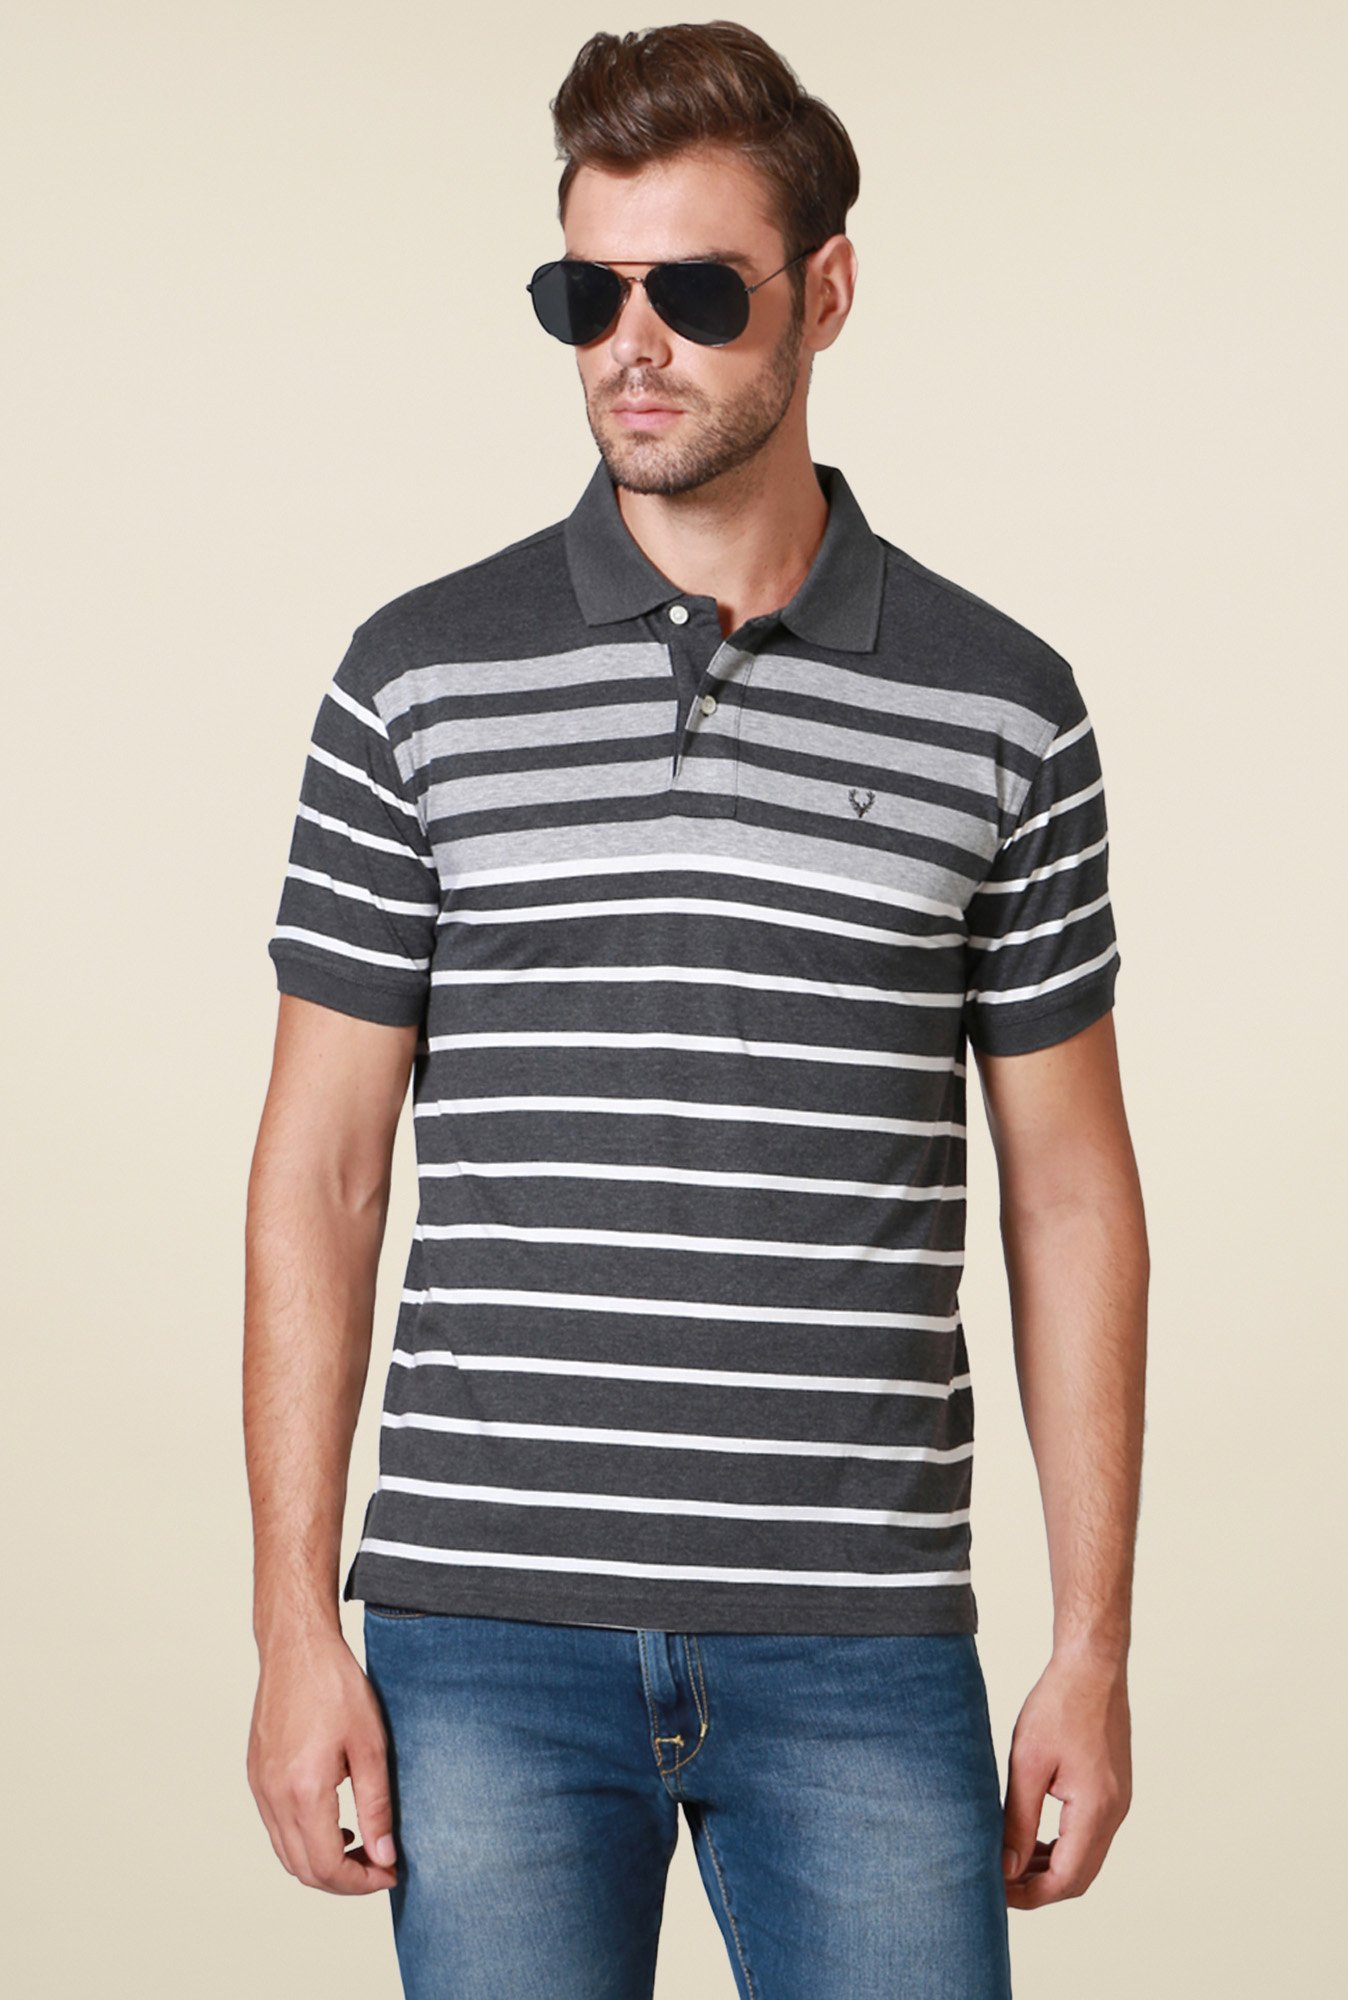 Allen Solly Dark Grey Regular Fit Polo Cotton T-Shirt